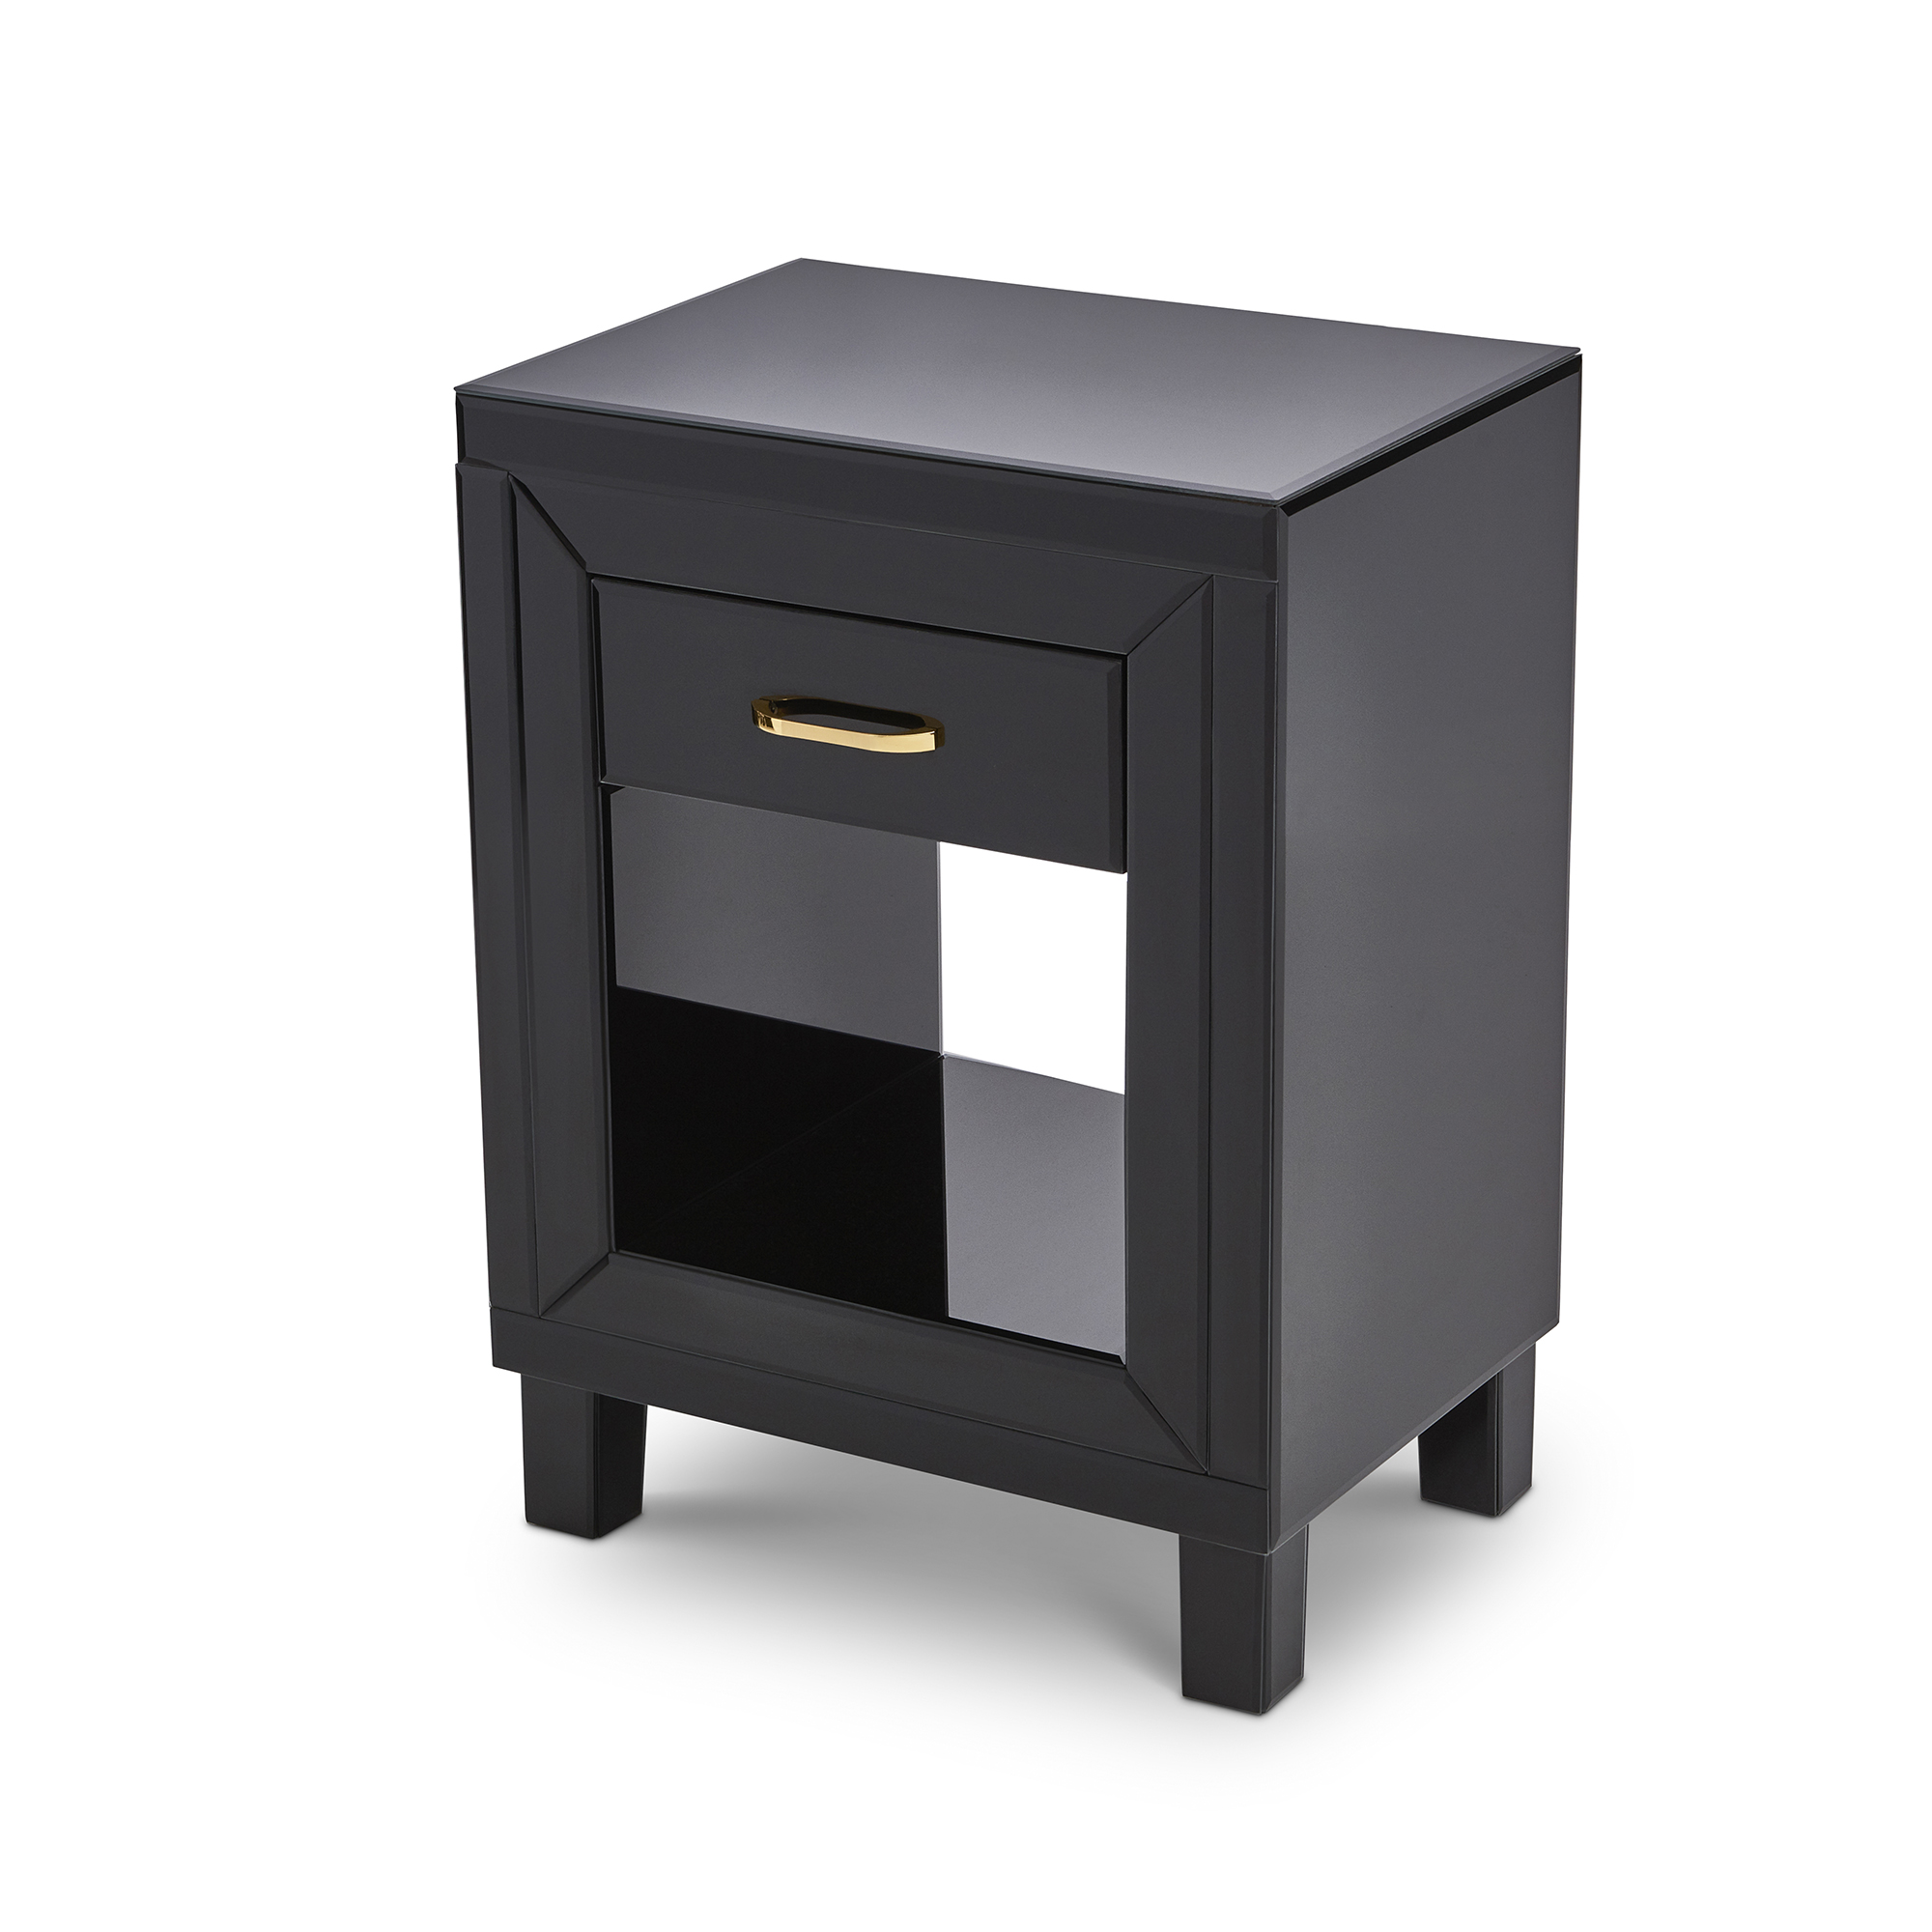 Black Glass Mirrored Bedroom Furniture Dressing Table Sets And Bedside Tables Ebay